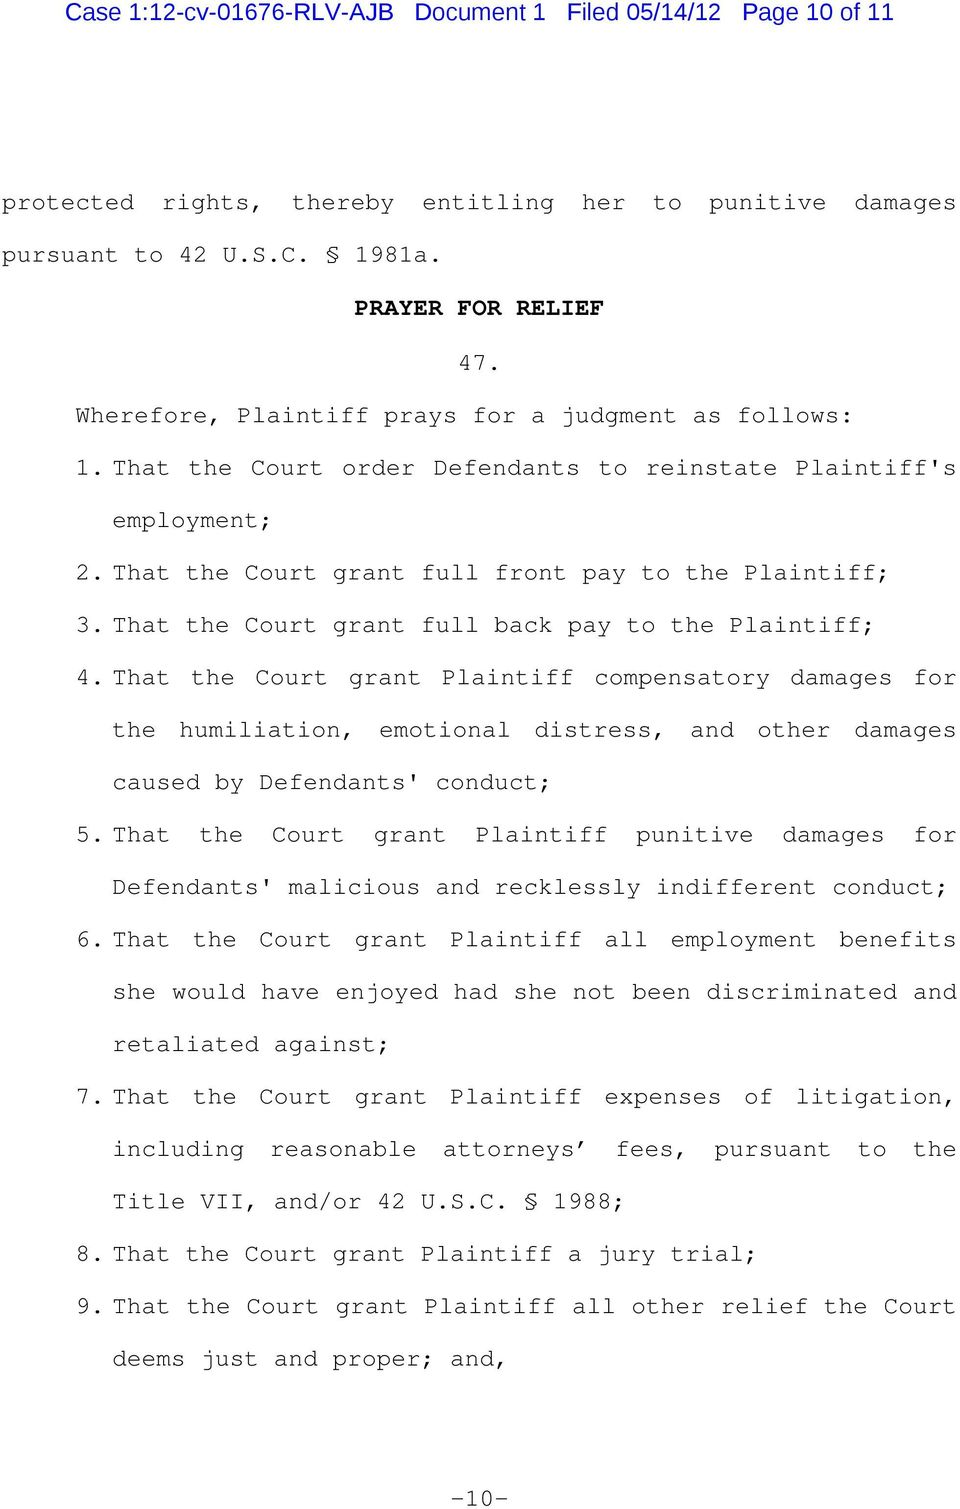 That the Court grant full back pay to the Plaintiff; 4. That the Court grant Plaintiff compensatory damages for the humiliation, emotional distress, and other damages caused by Defendants' conduct; 5.